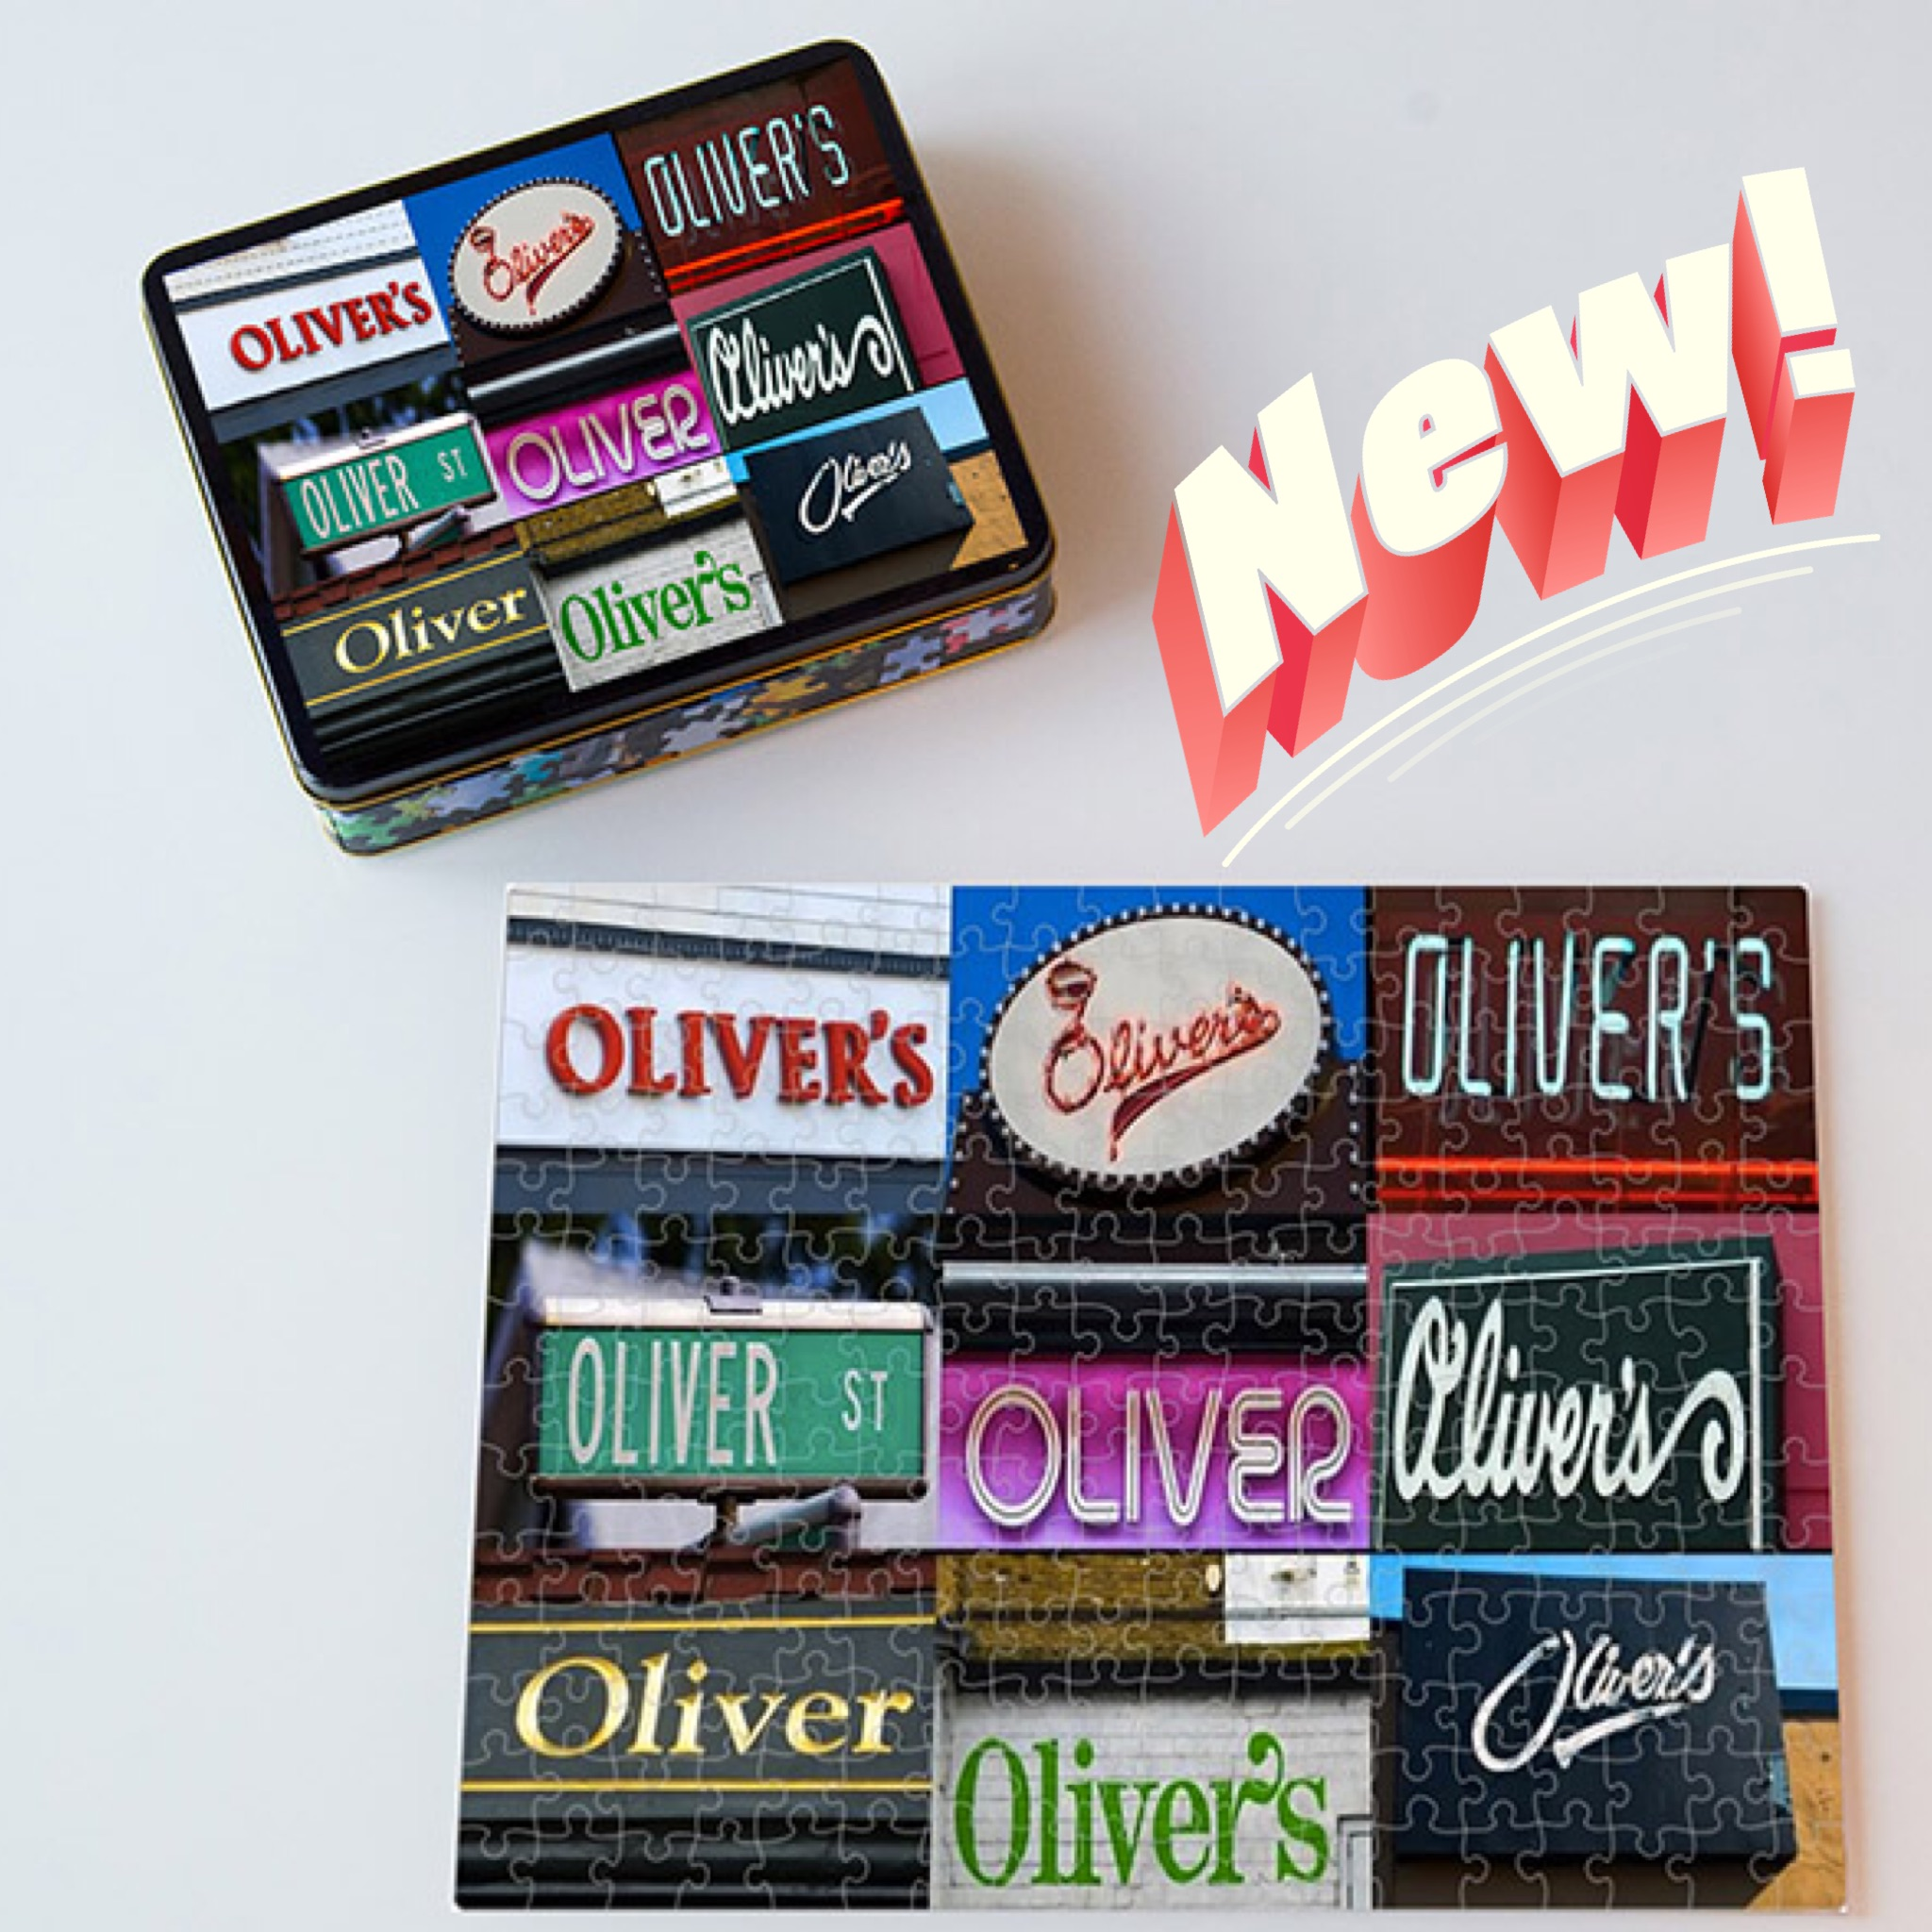 https://www.etsy.com/listing/246168451/personalized-puzzle-featuring-the-name?ref=shop_home_active_17